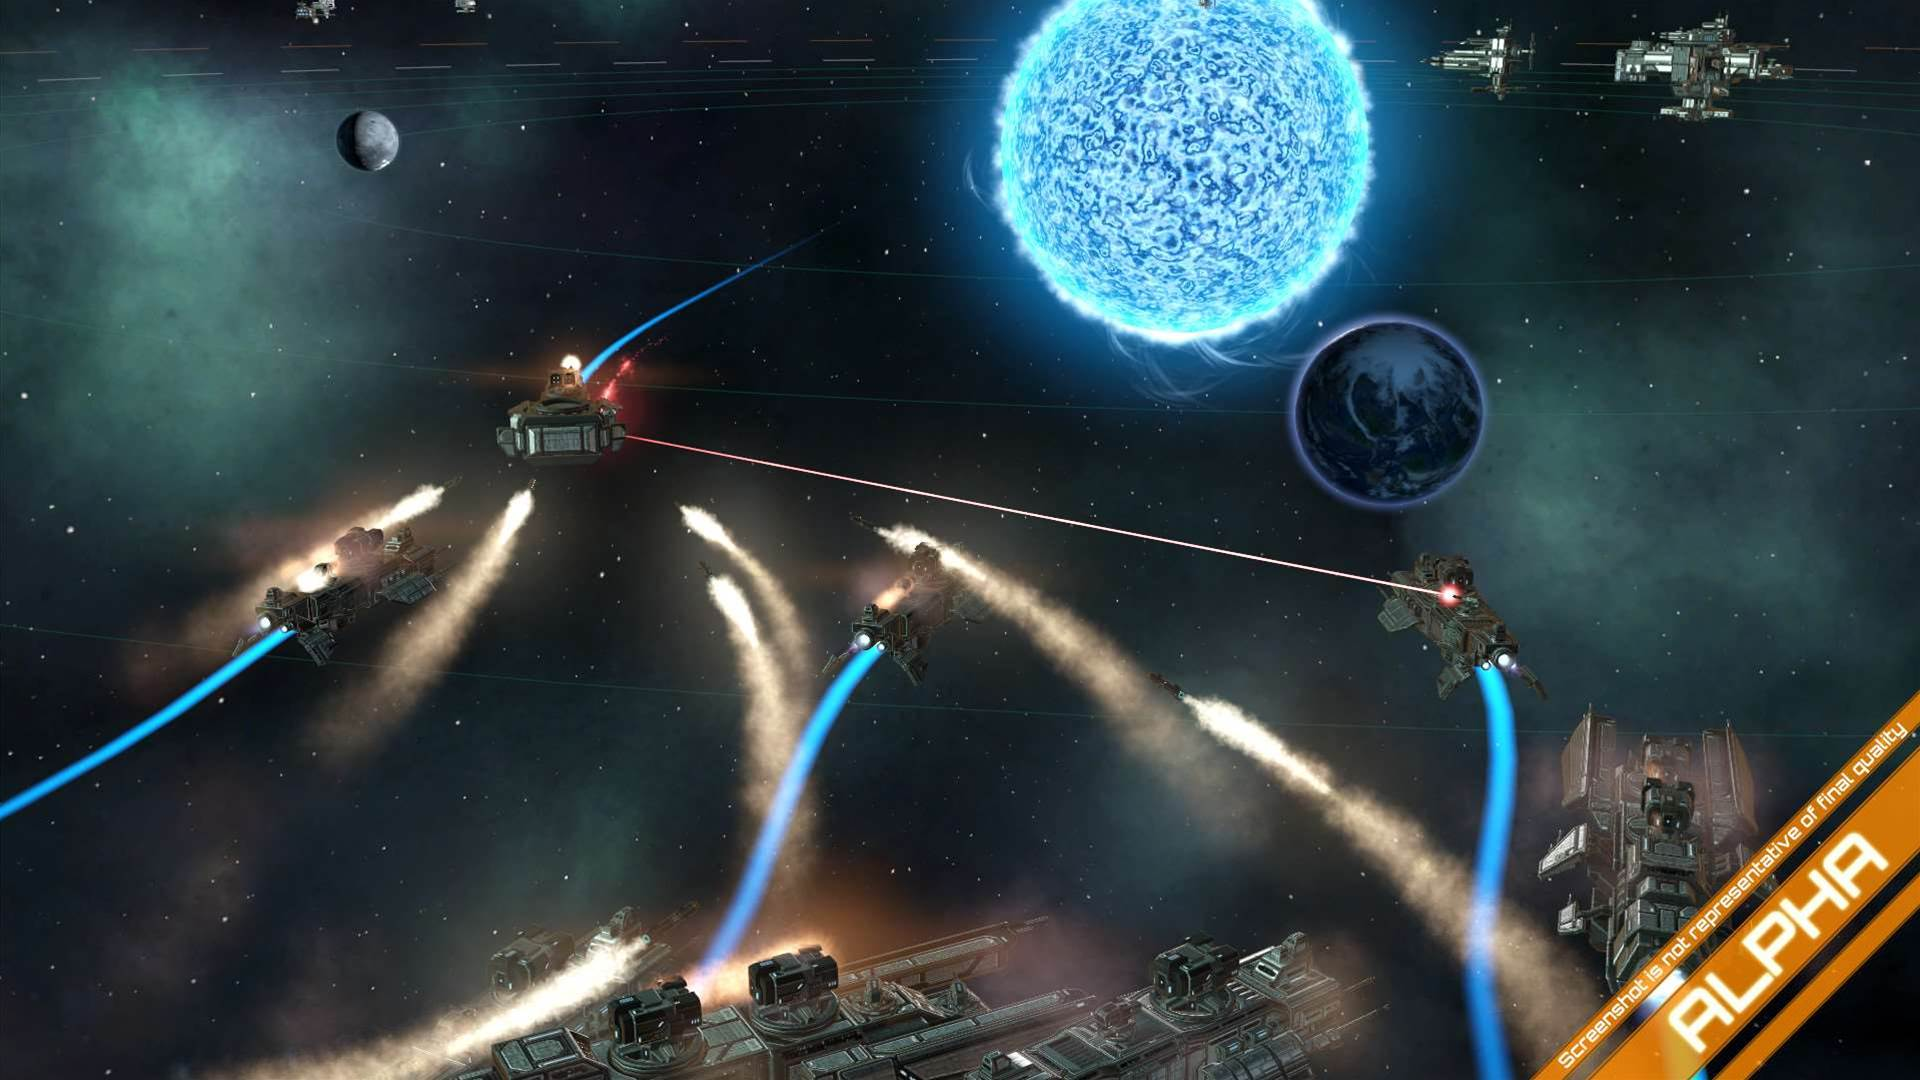 Stellaris offers procedural aliens in a 4X space strategy game